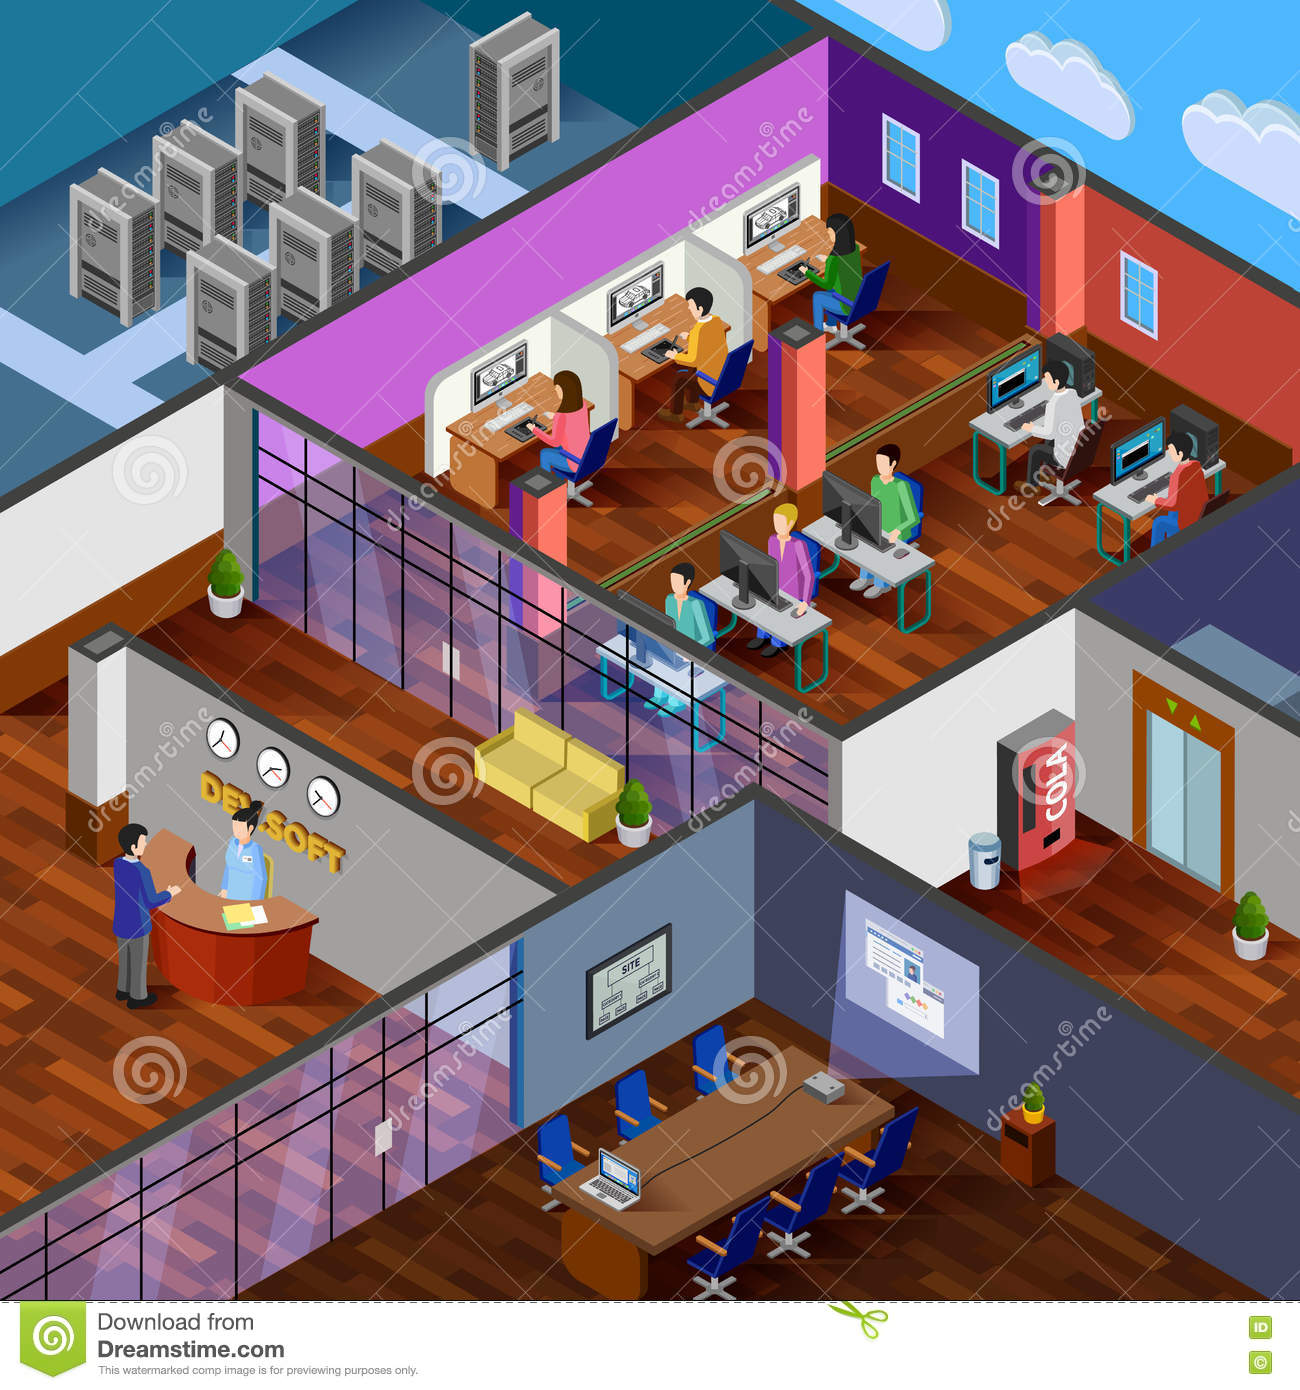 Developers cartoons illustrations vector stock images for Office room design software